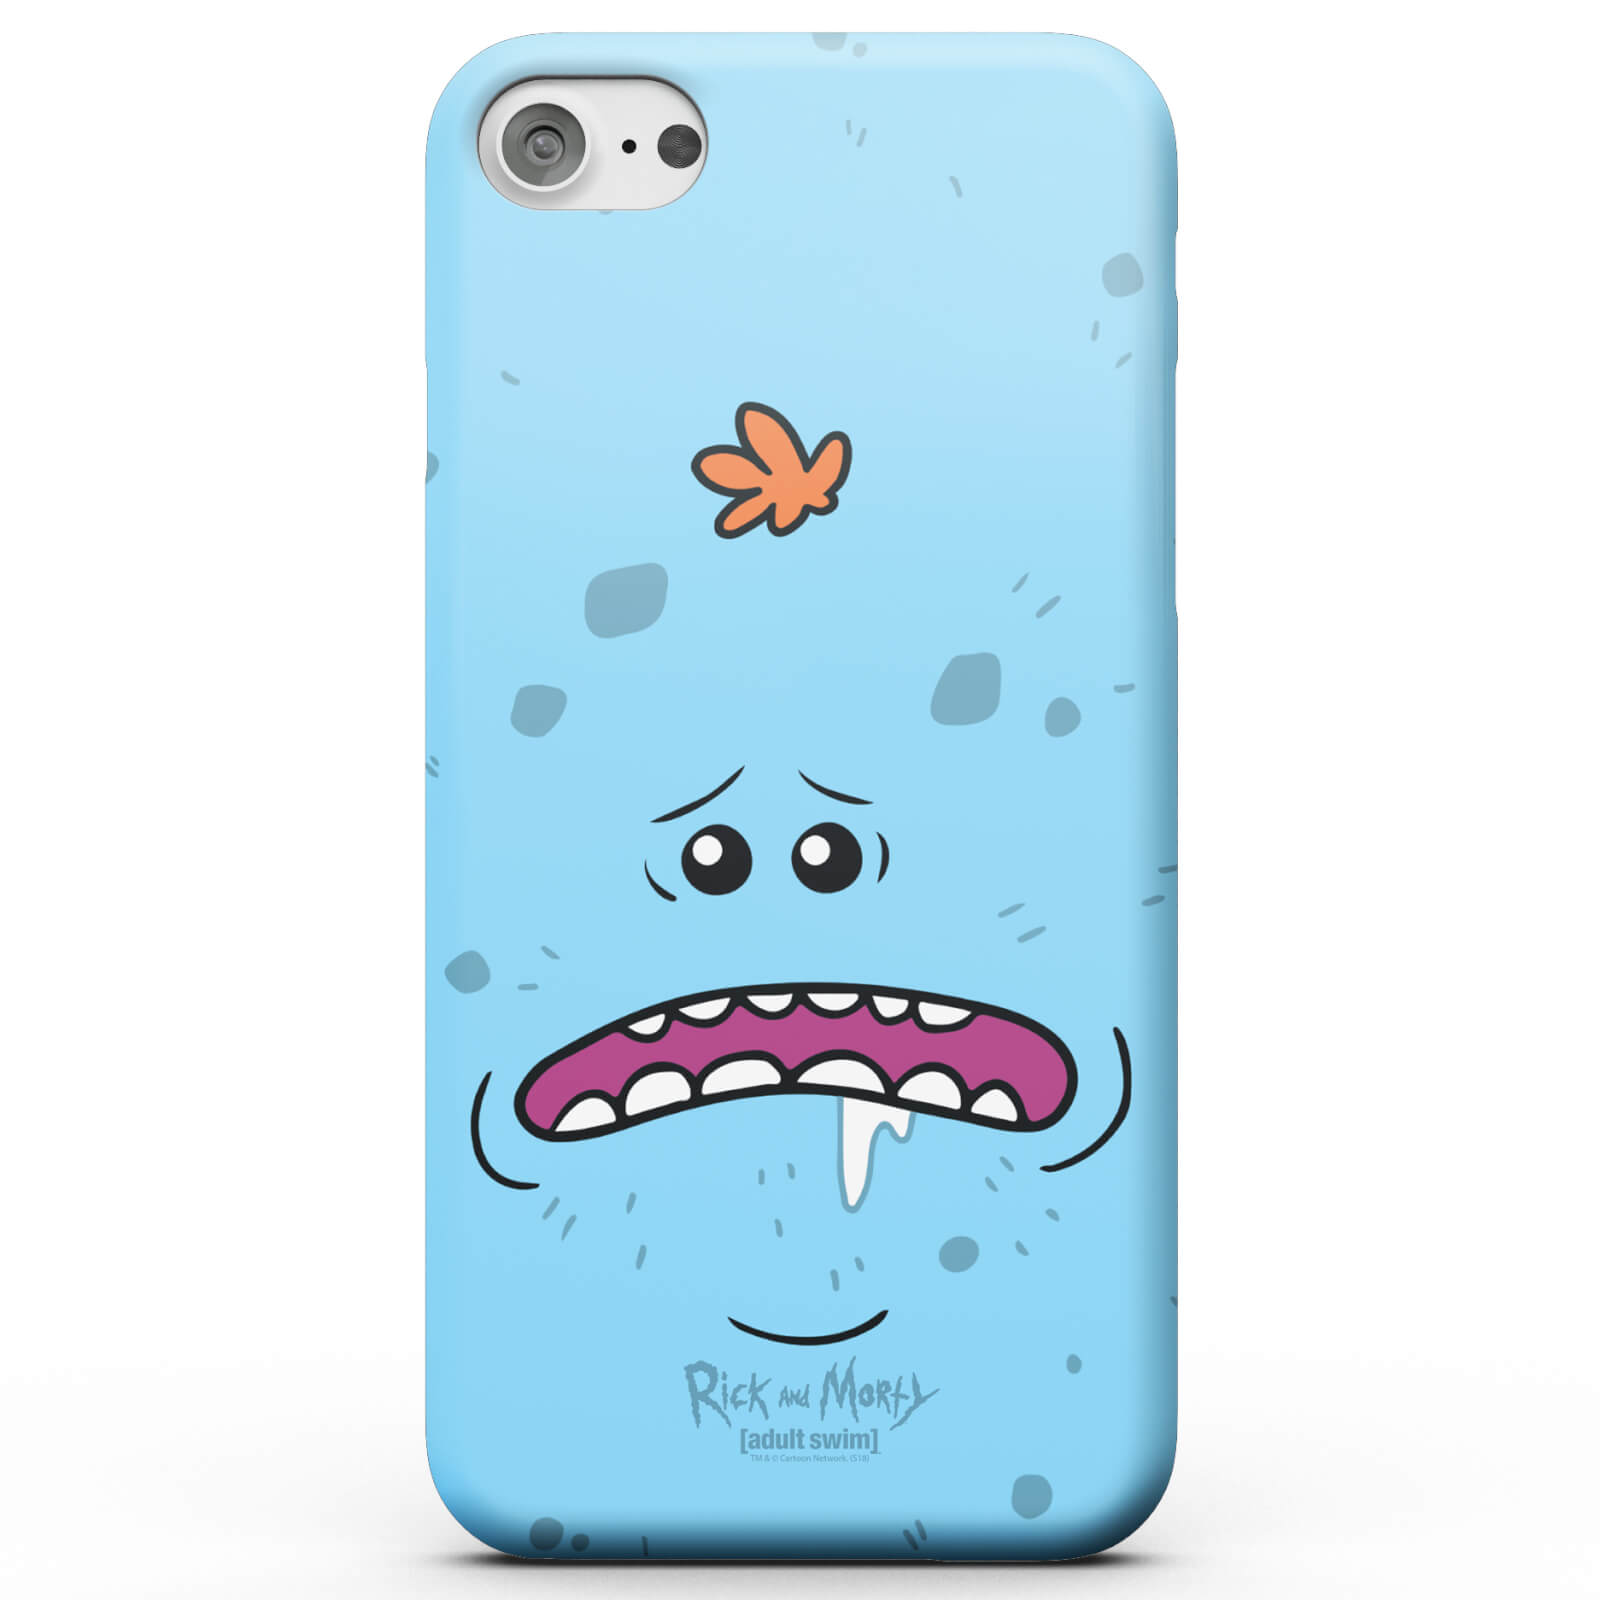 Funda Móvil Rick y Morty Mr Meeseeks para iPhone y Android - iPhone X - Carcasa doble capa - Mate de Rick and Morty